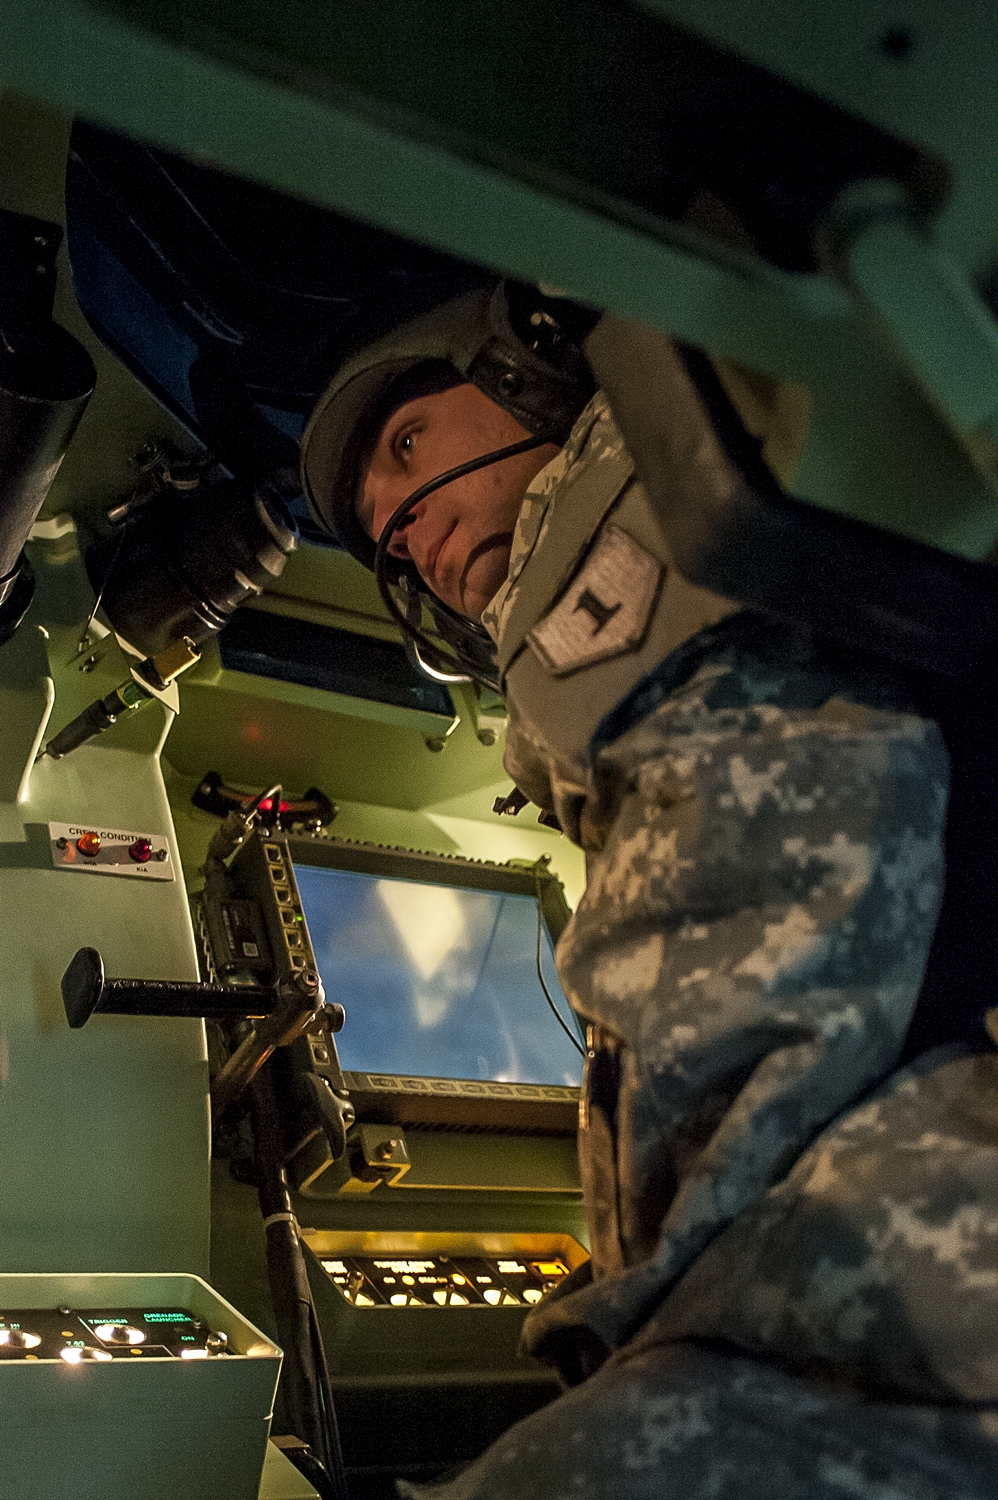 A soldier operates a Bradley Infantry Fighting Vehicle simulator. Soldiers at Fort Riley have begun using a new virtual training system integrating simulators with real life troop and equipment movements, designed to cut costs and better prepare troops.